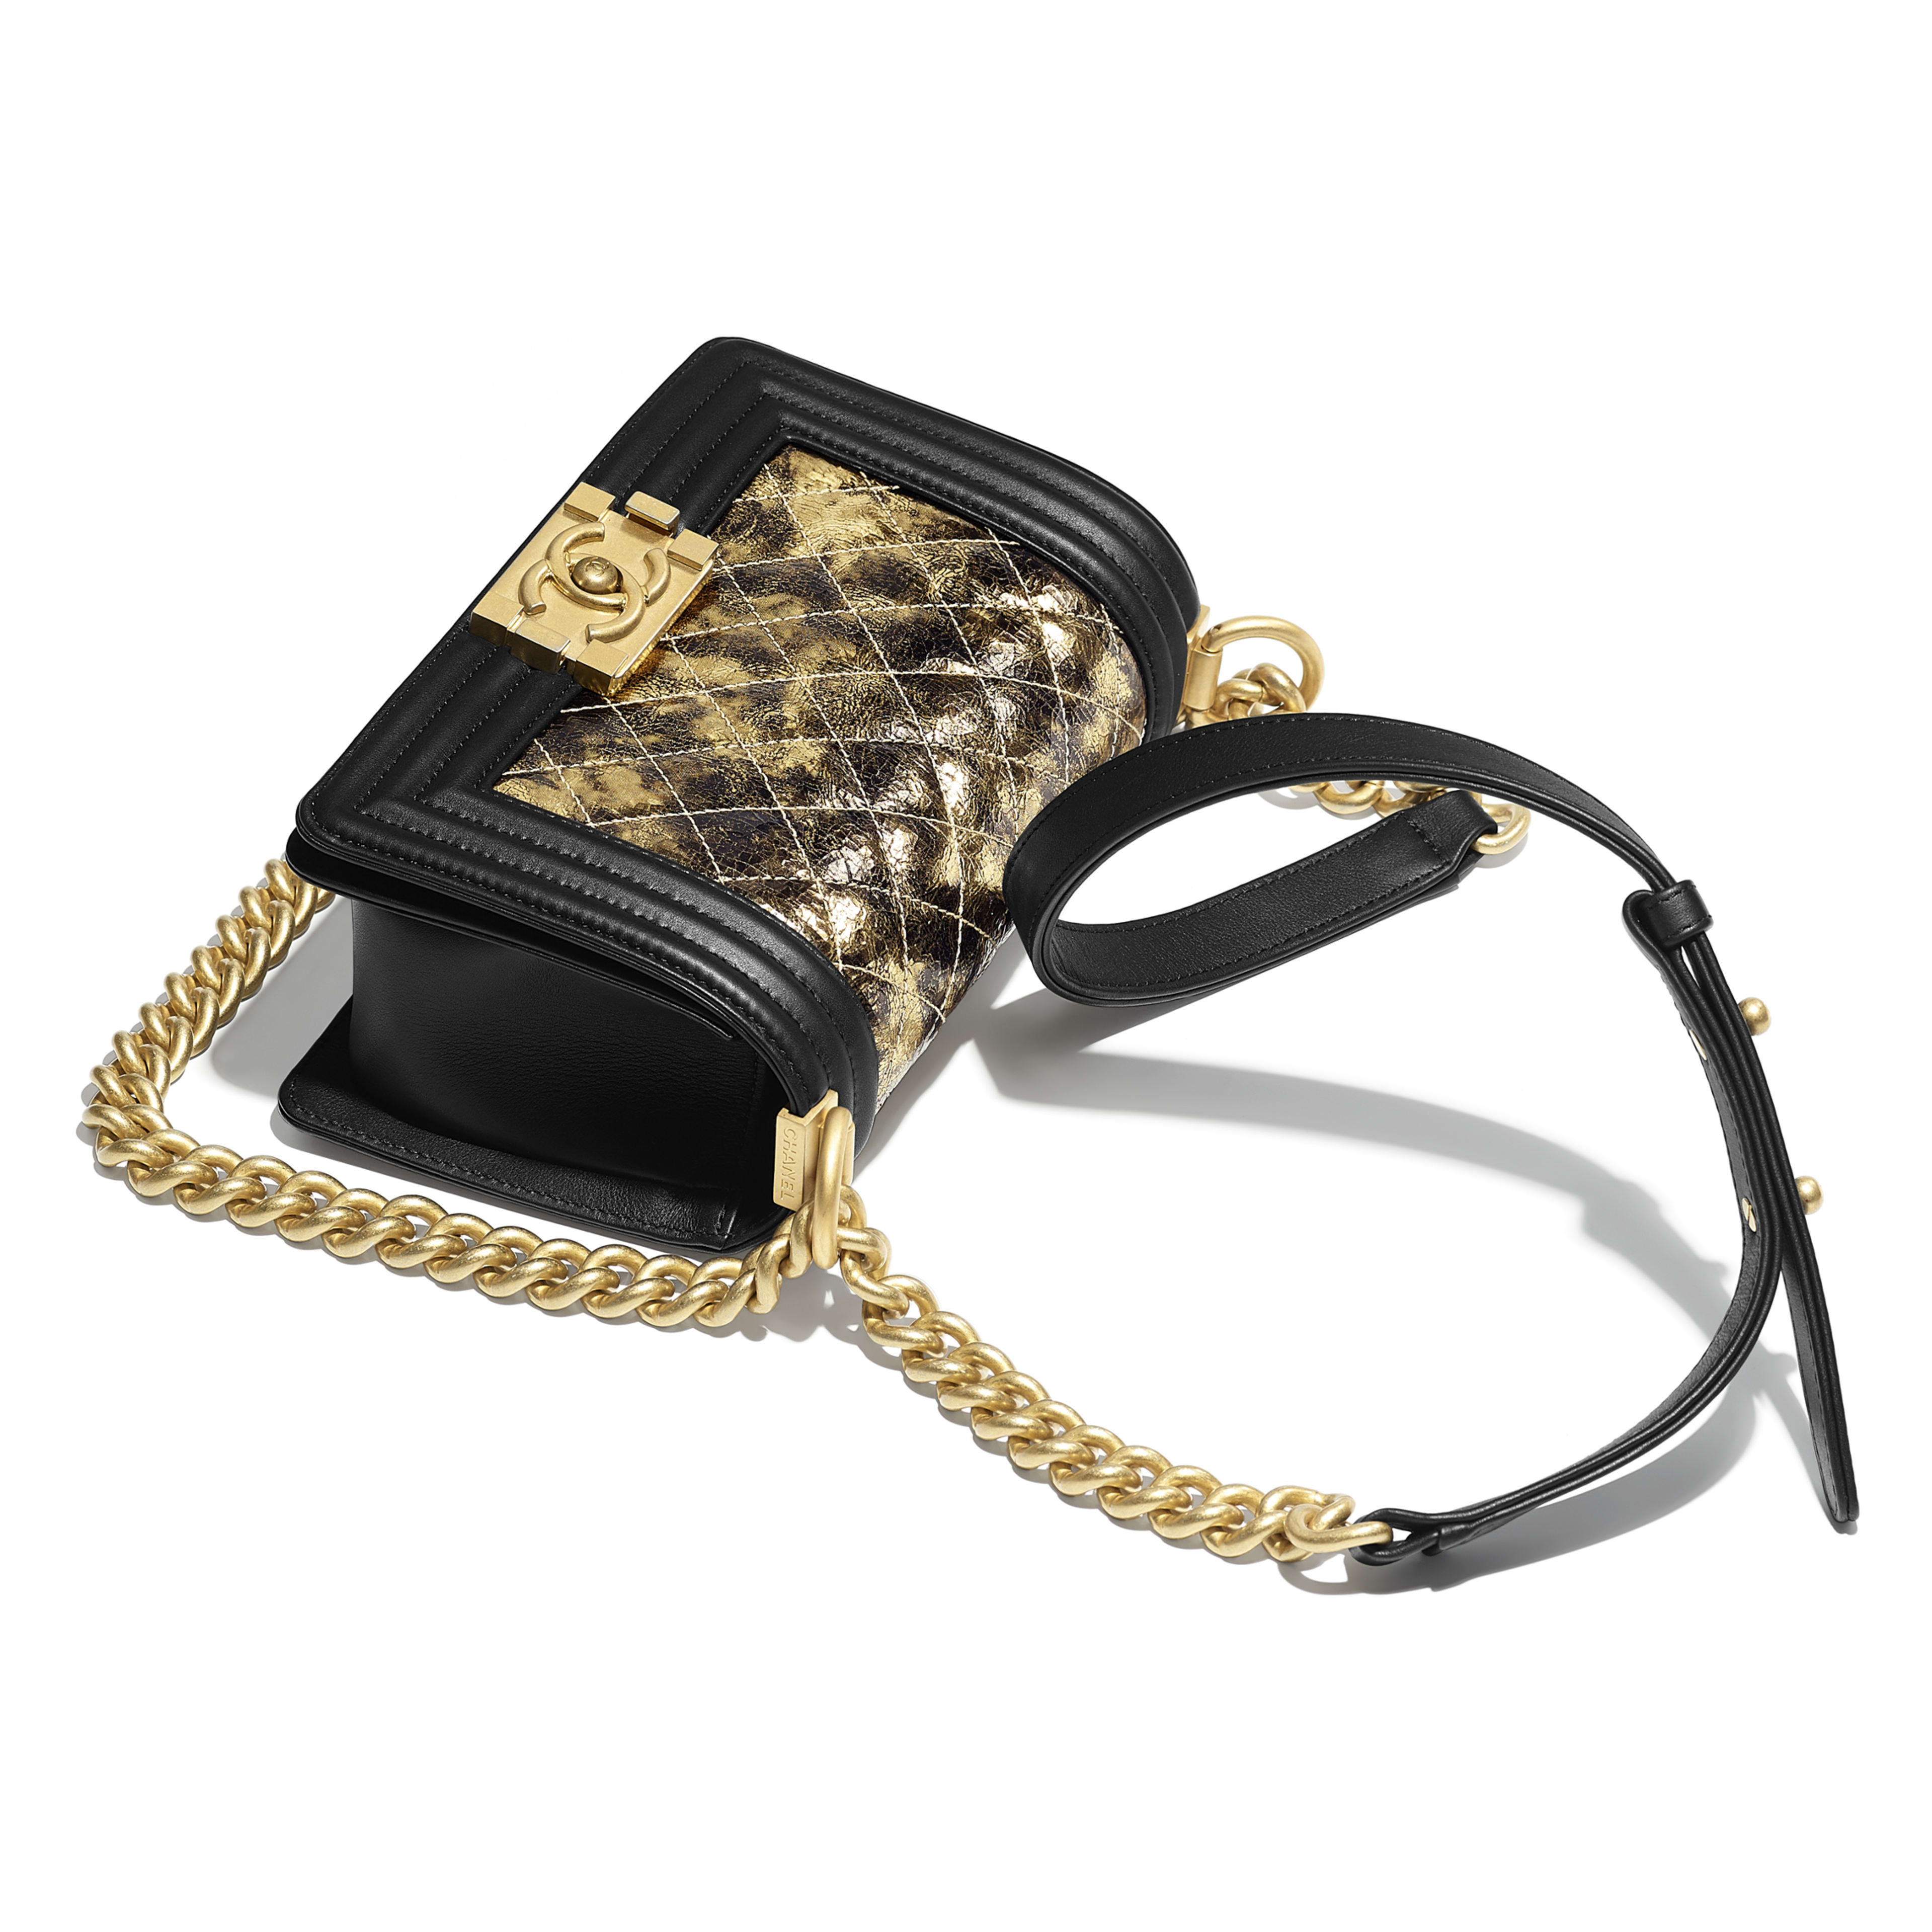 Small BOY CHANEL Handbag - Gold & Black - Metallic Crumpled Goatskin, Calfskin & Gold-Tone Metal - Other view - see full sized version